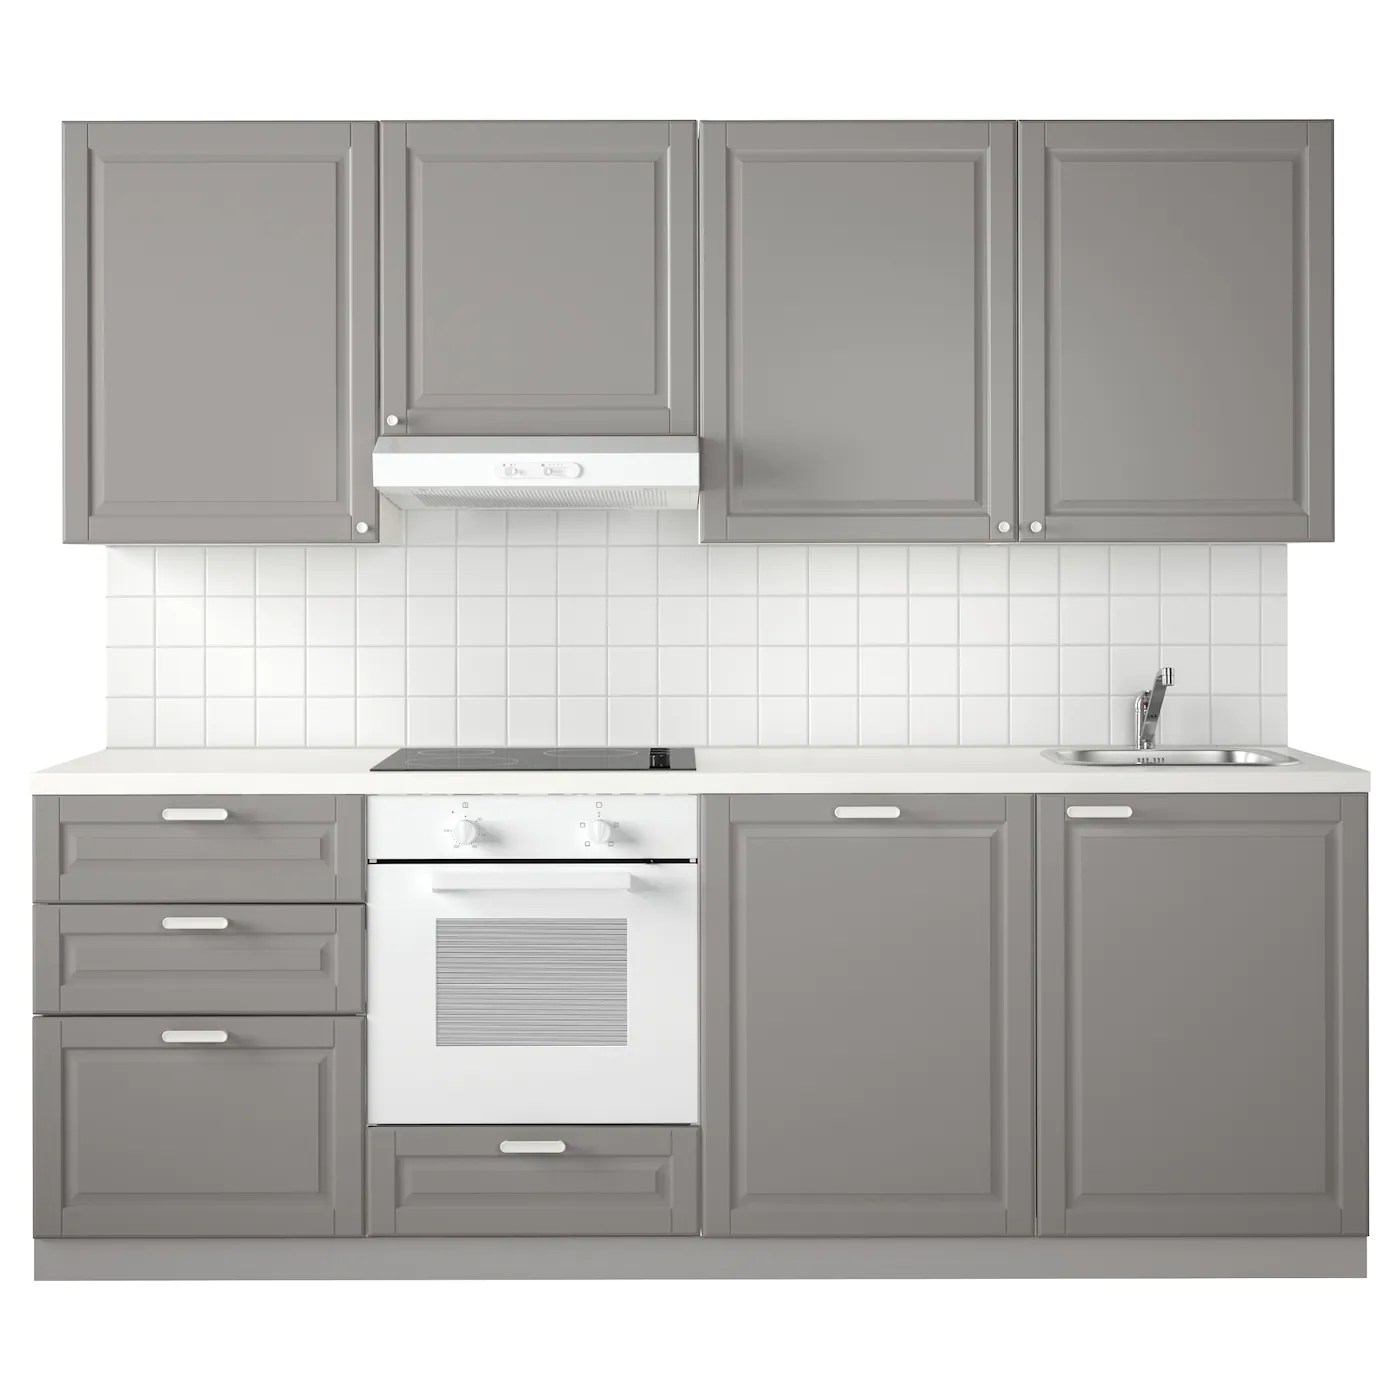 Ikea Method Metod Kitchen White Maximera Bodbyn Grey